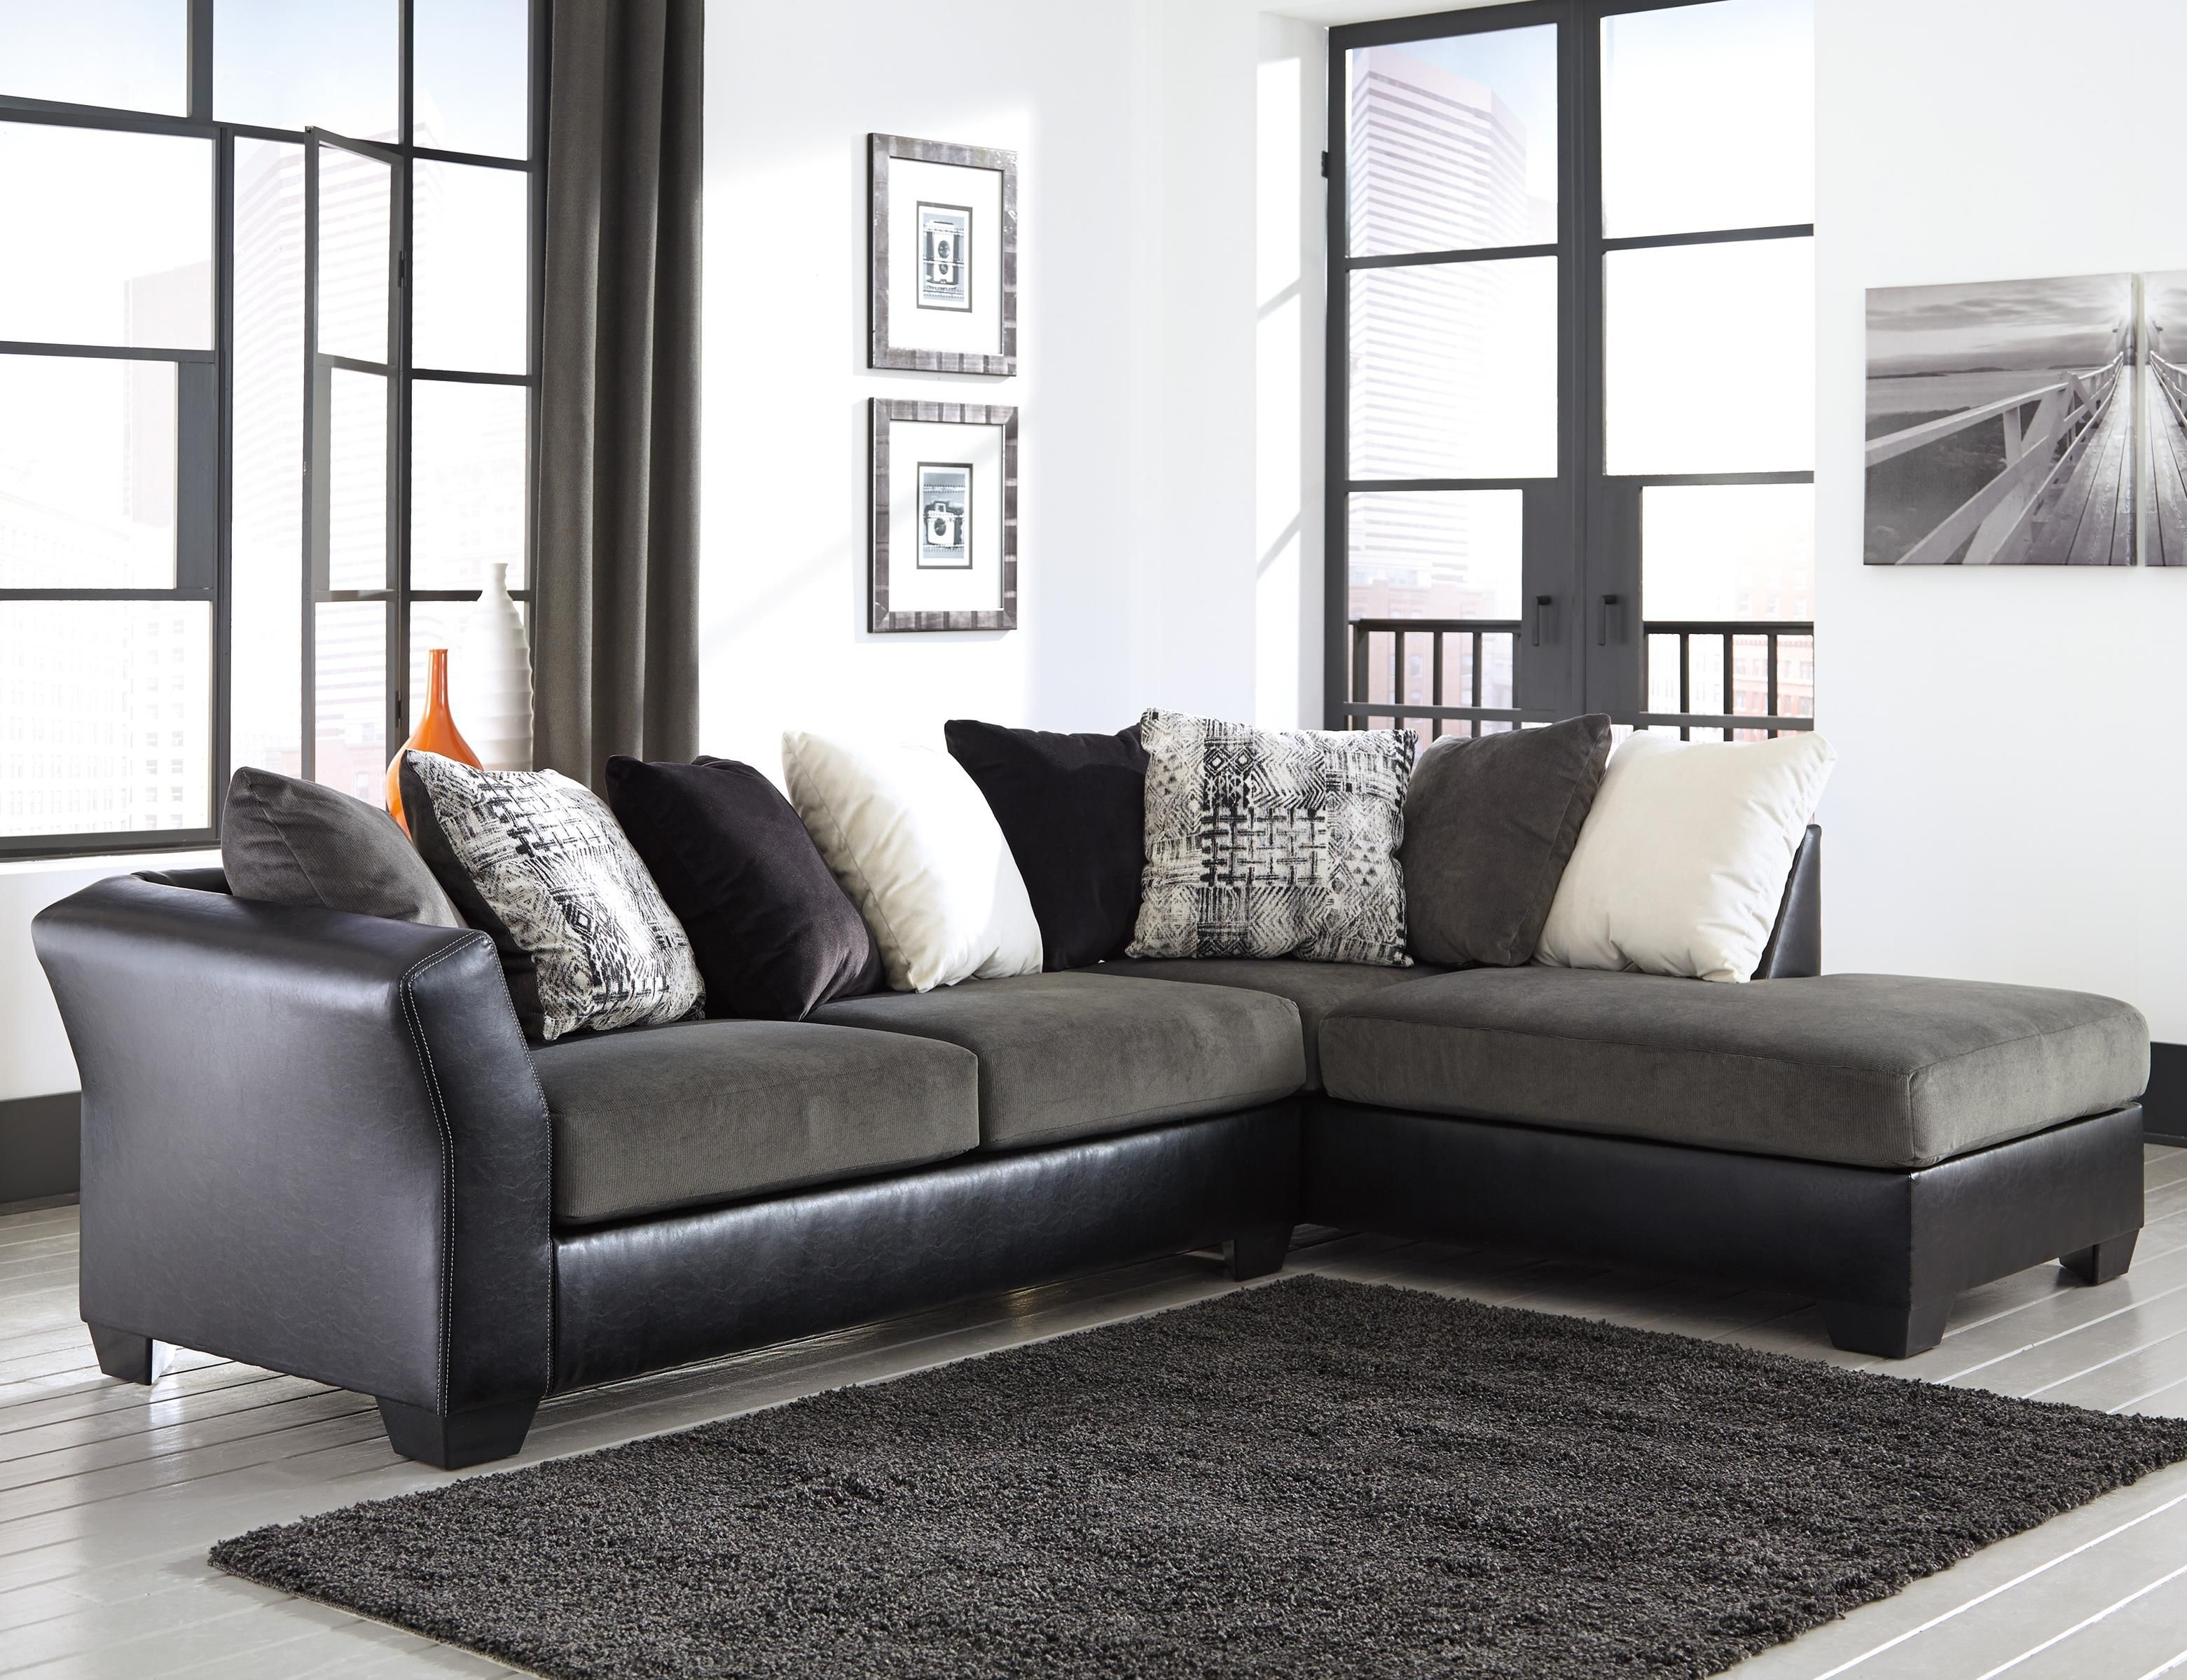 Armant 2 Piece Sectional With Right Chaisesignature Design In Cohen Down 2 Piece Sectionals (Image 2 of 25)